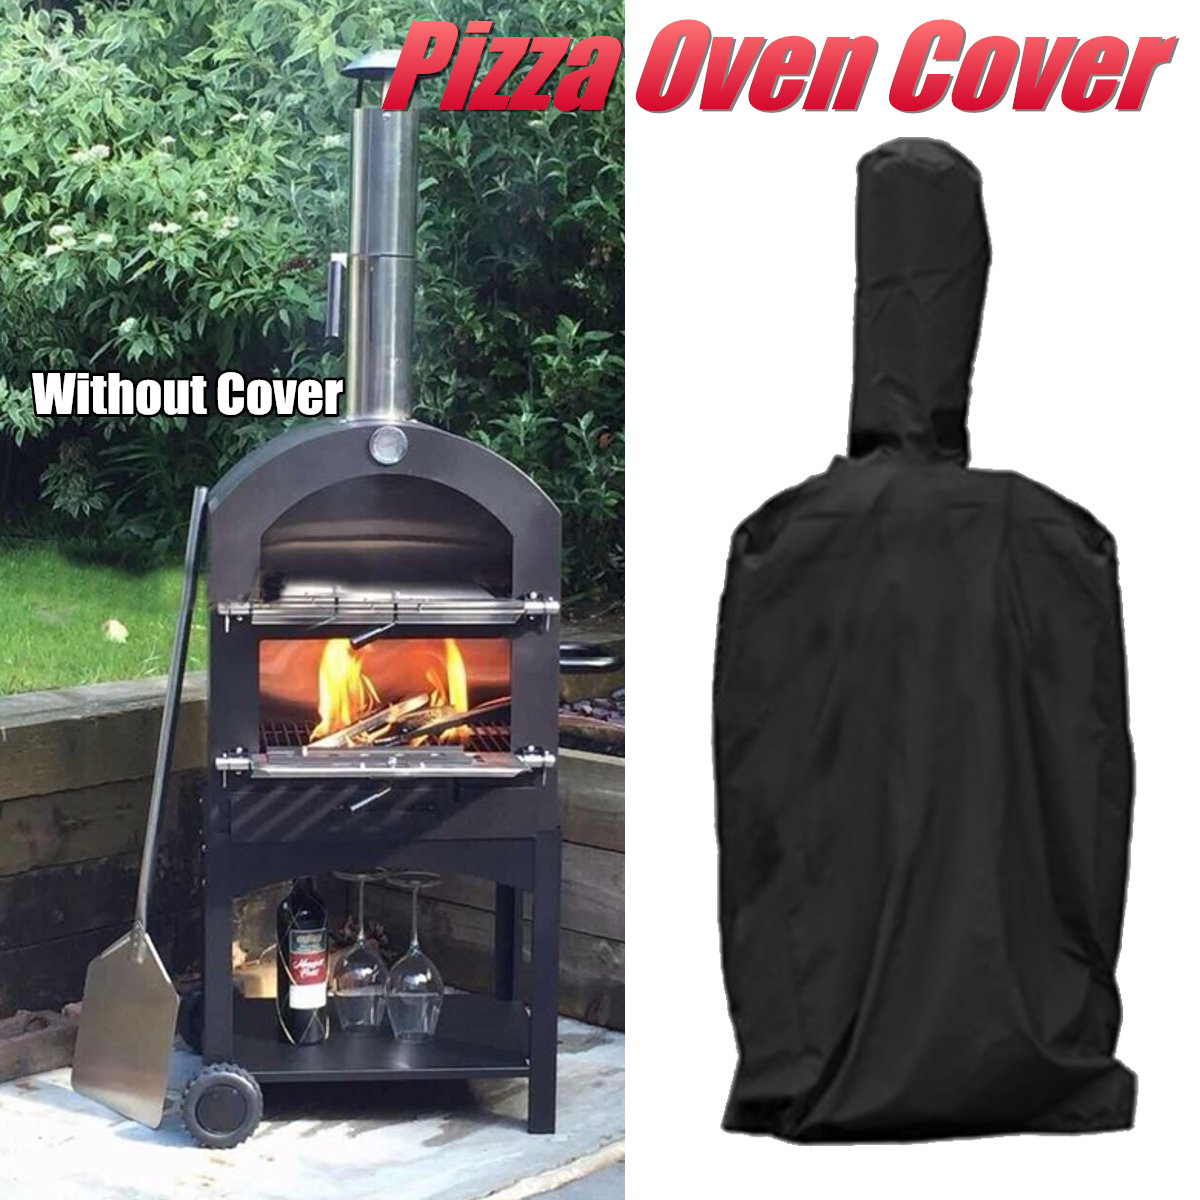 Outdoor Pizza Oven Cover Oxford Cloth